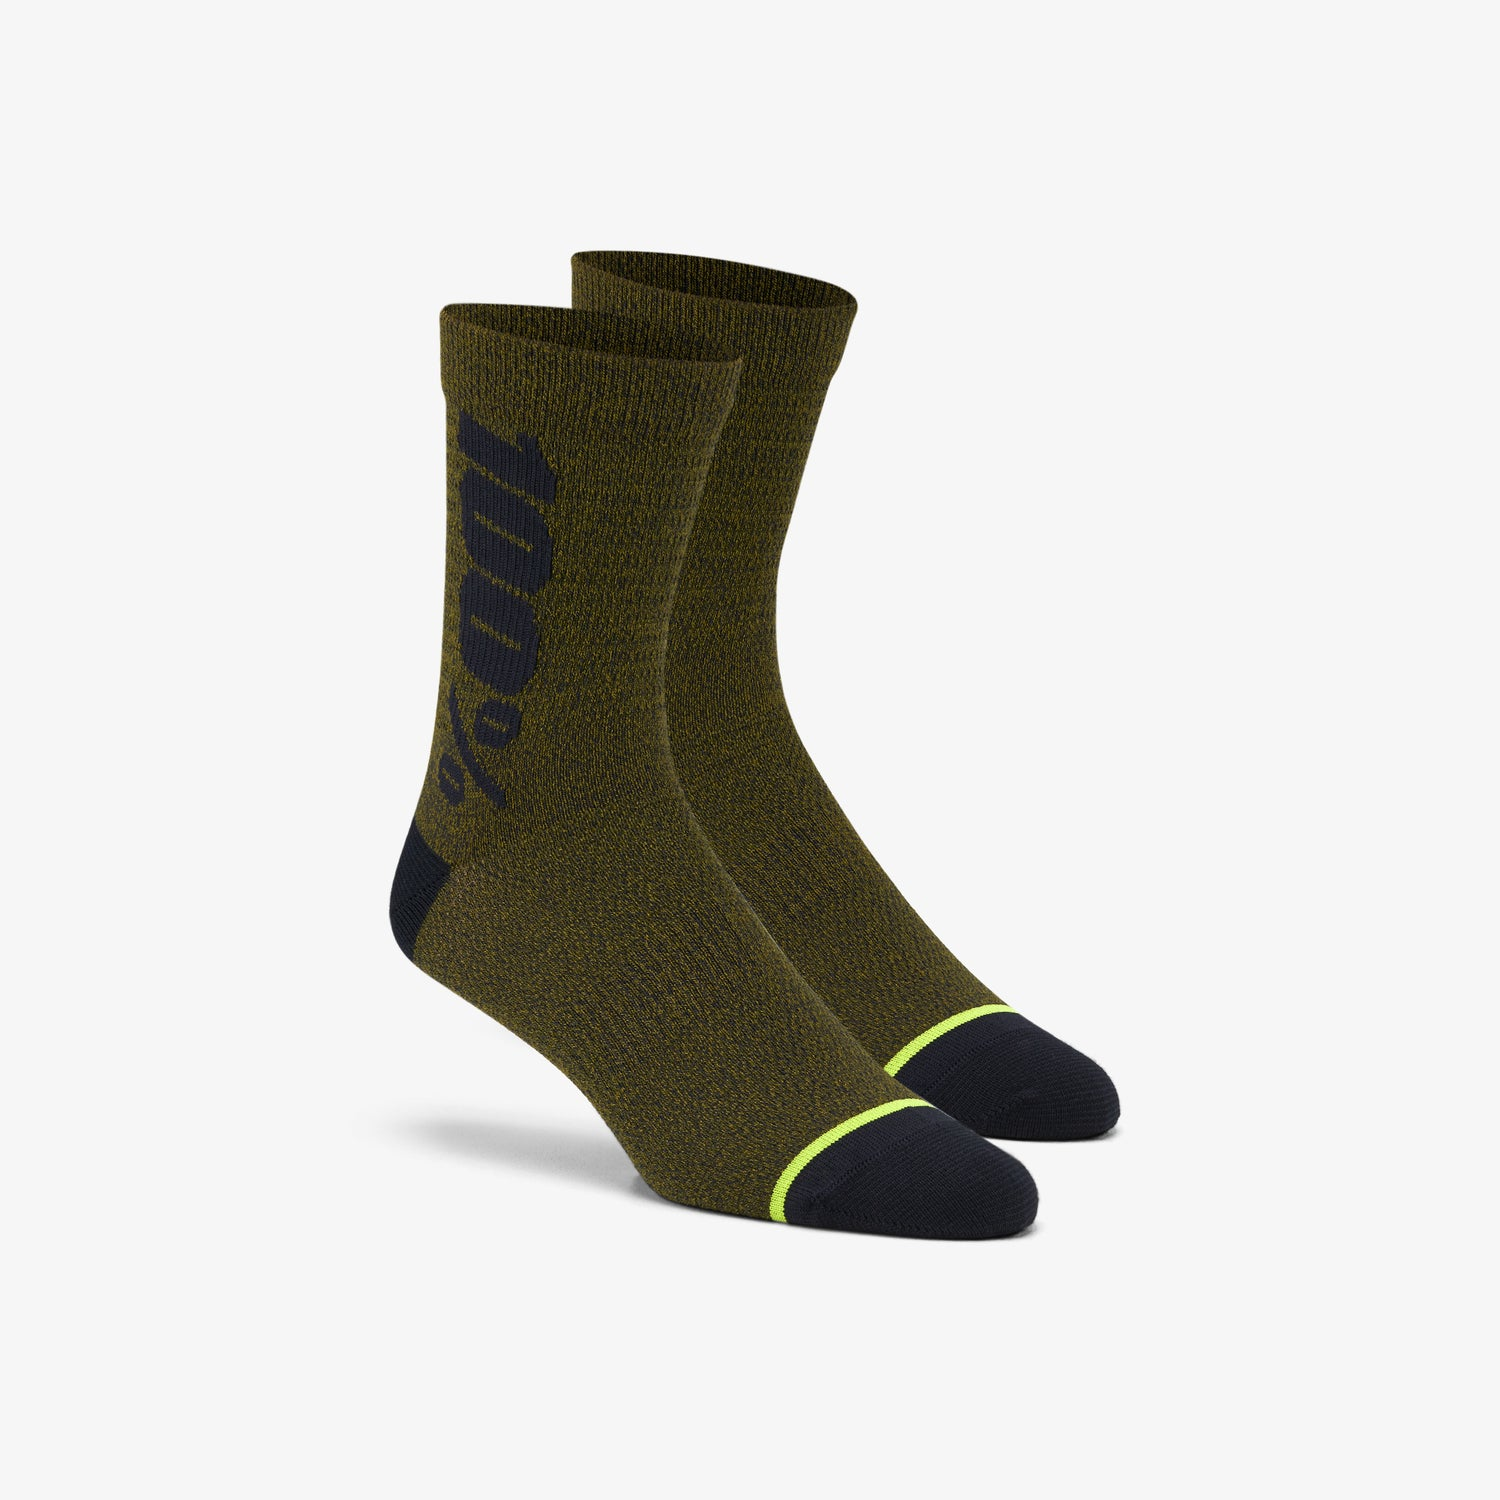 RYTHYM Merino Wool Performance Socks - Fatigue